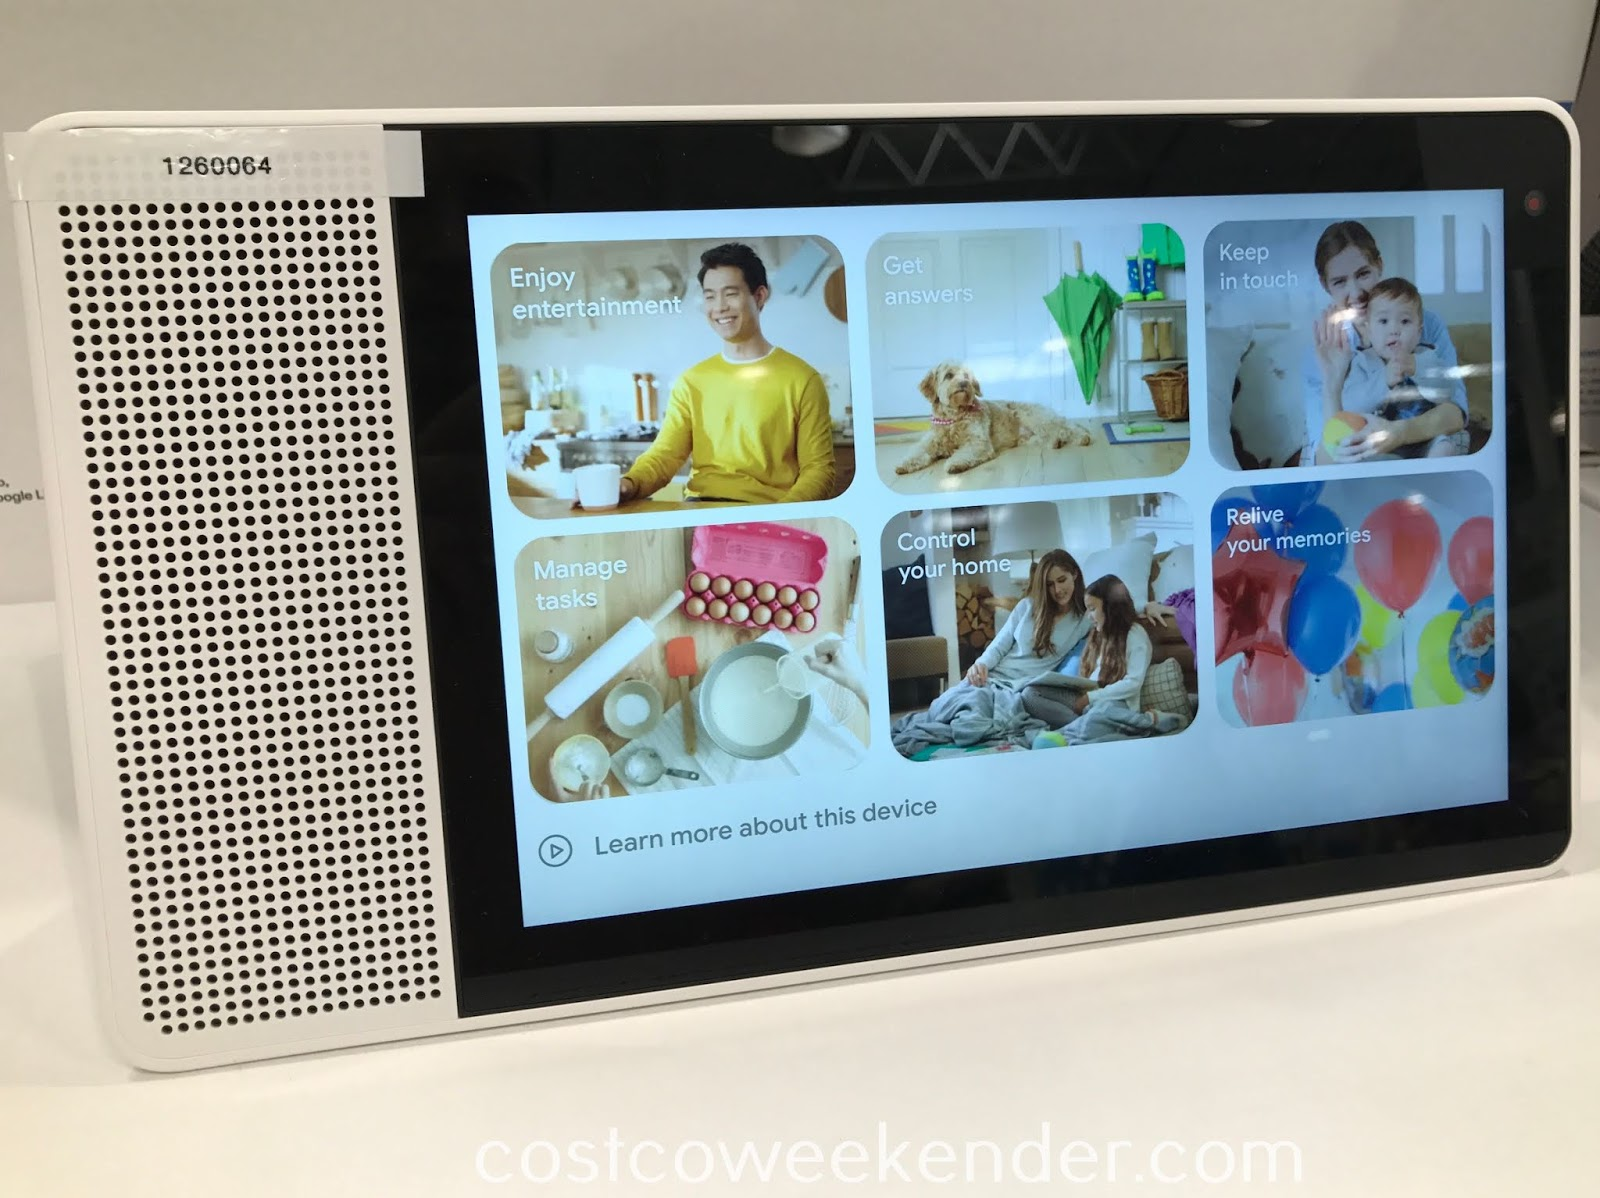 Costco 1264060 - Make your home into a smart home with the Lenovo Smart Display